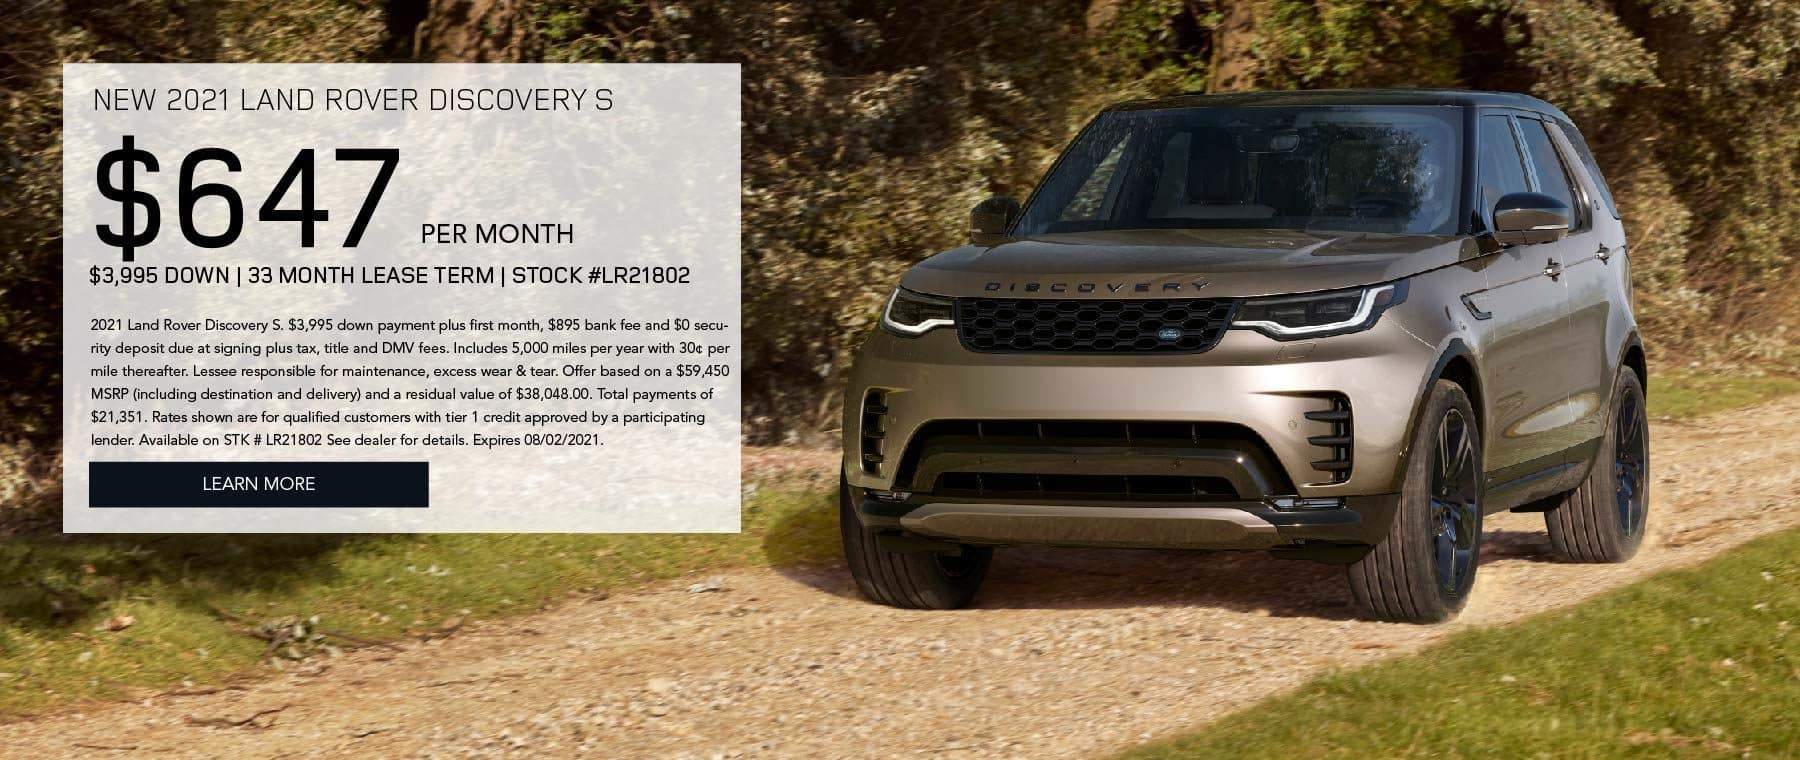 Land Rover Manhattan_July New 2021 Discovery S